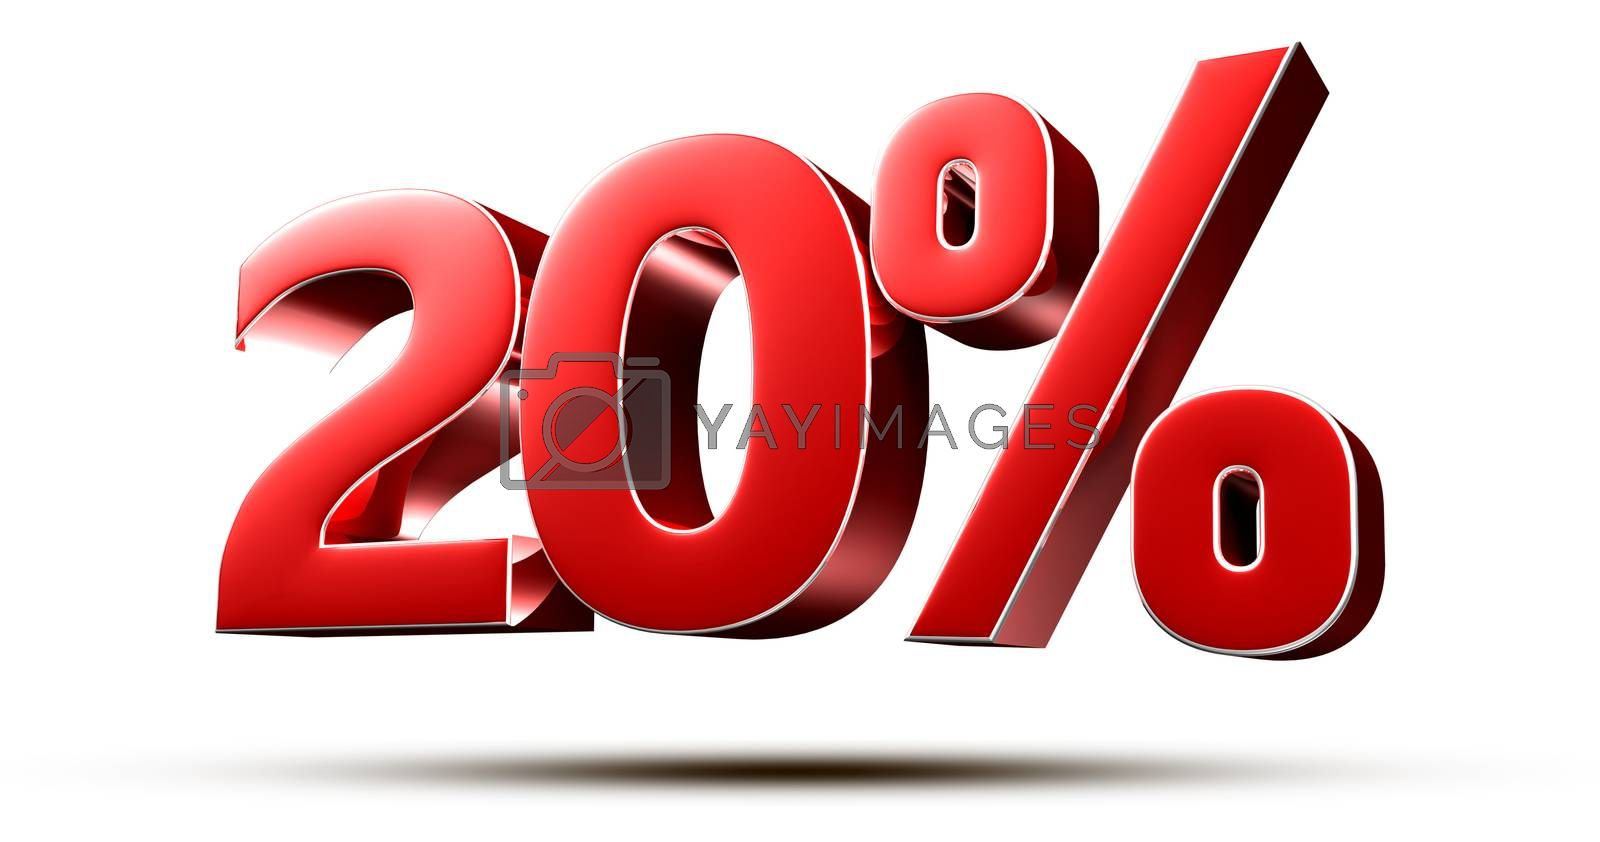 3D illustration 20 percent red isolated on a white background.(with Clipping Path).